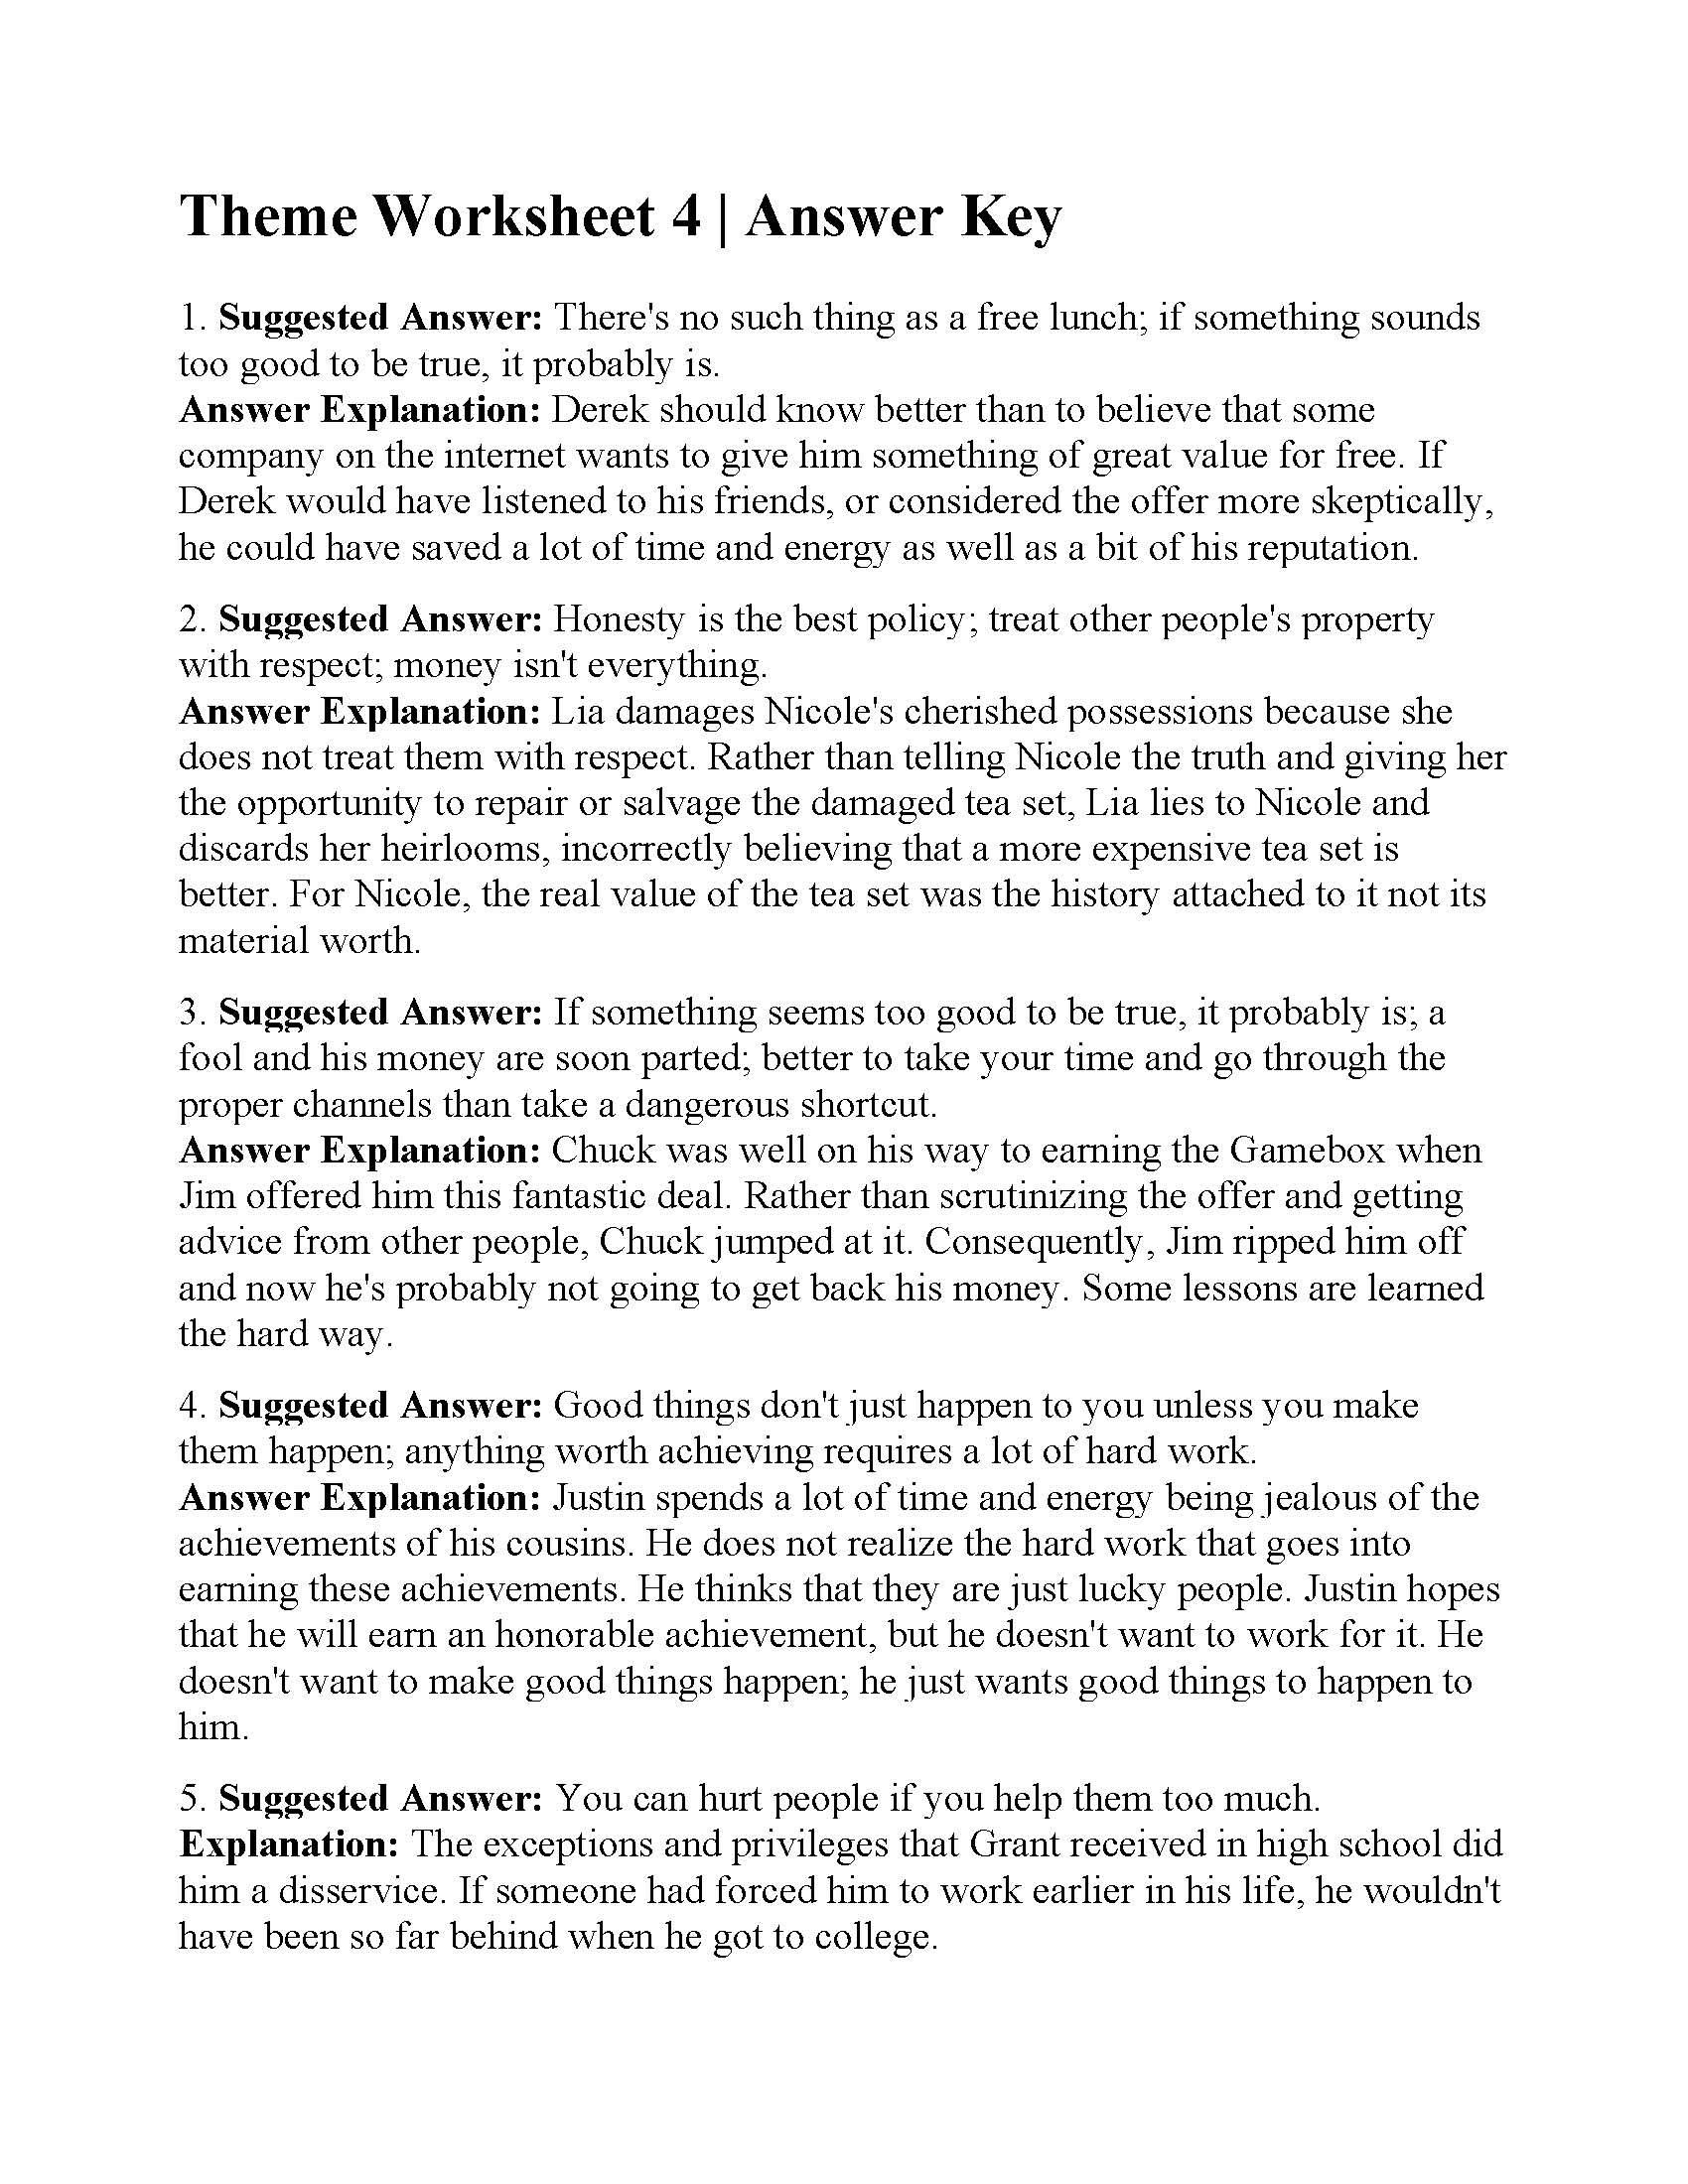 Theme Worksheets for Middle School This is the Answer Key for the theme Worksheet 4